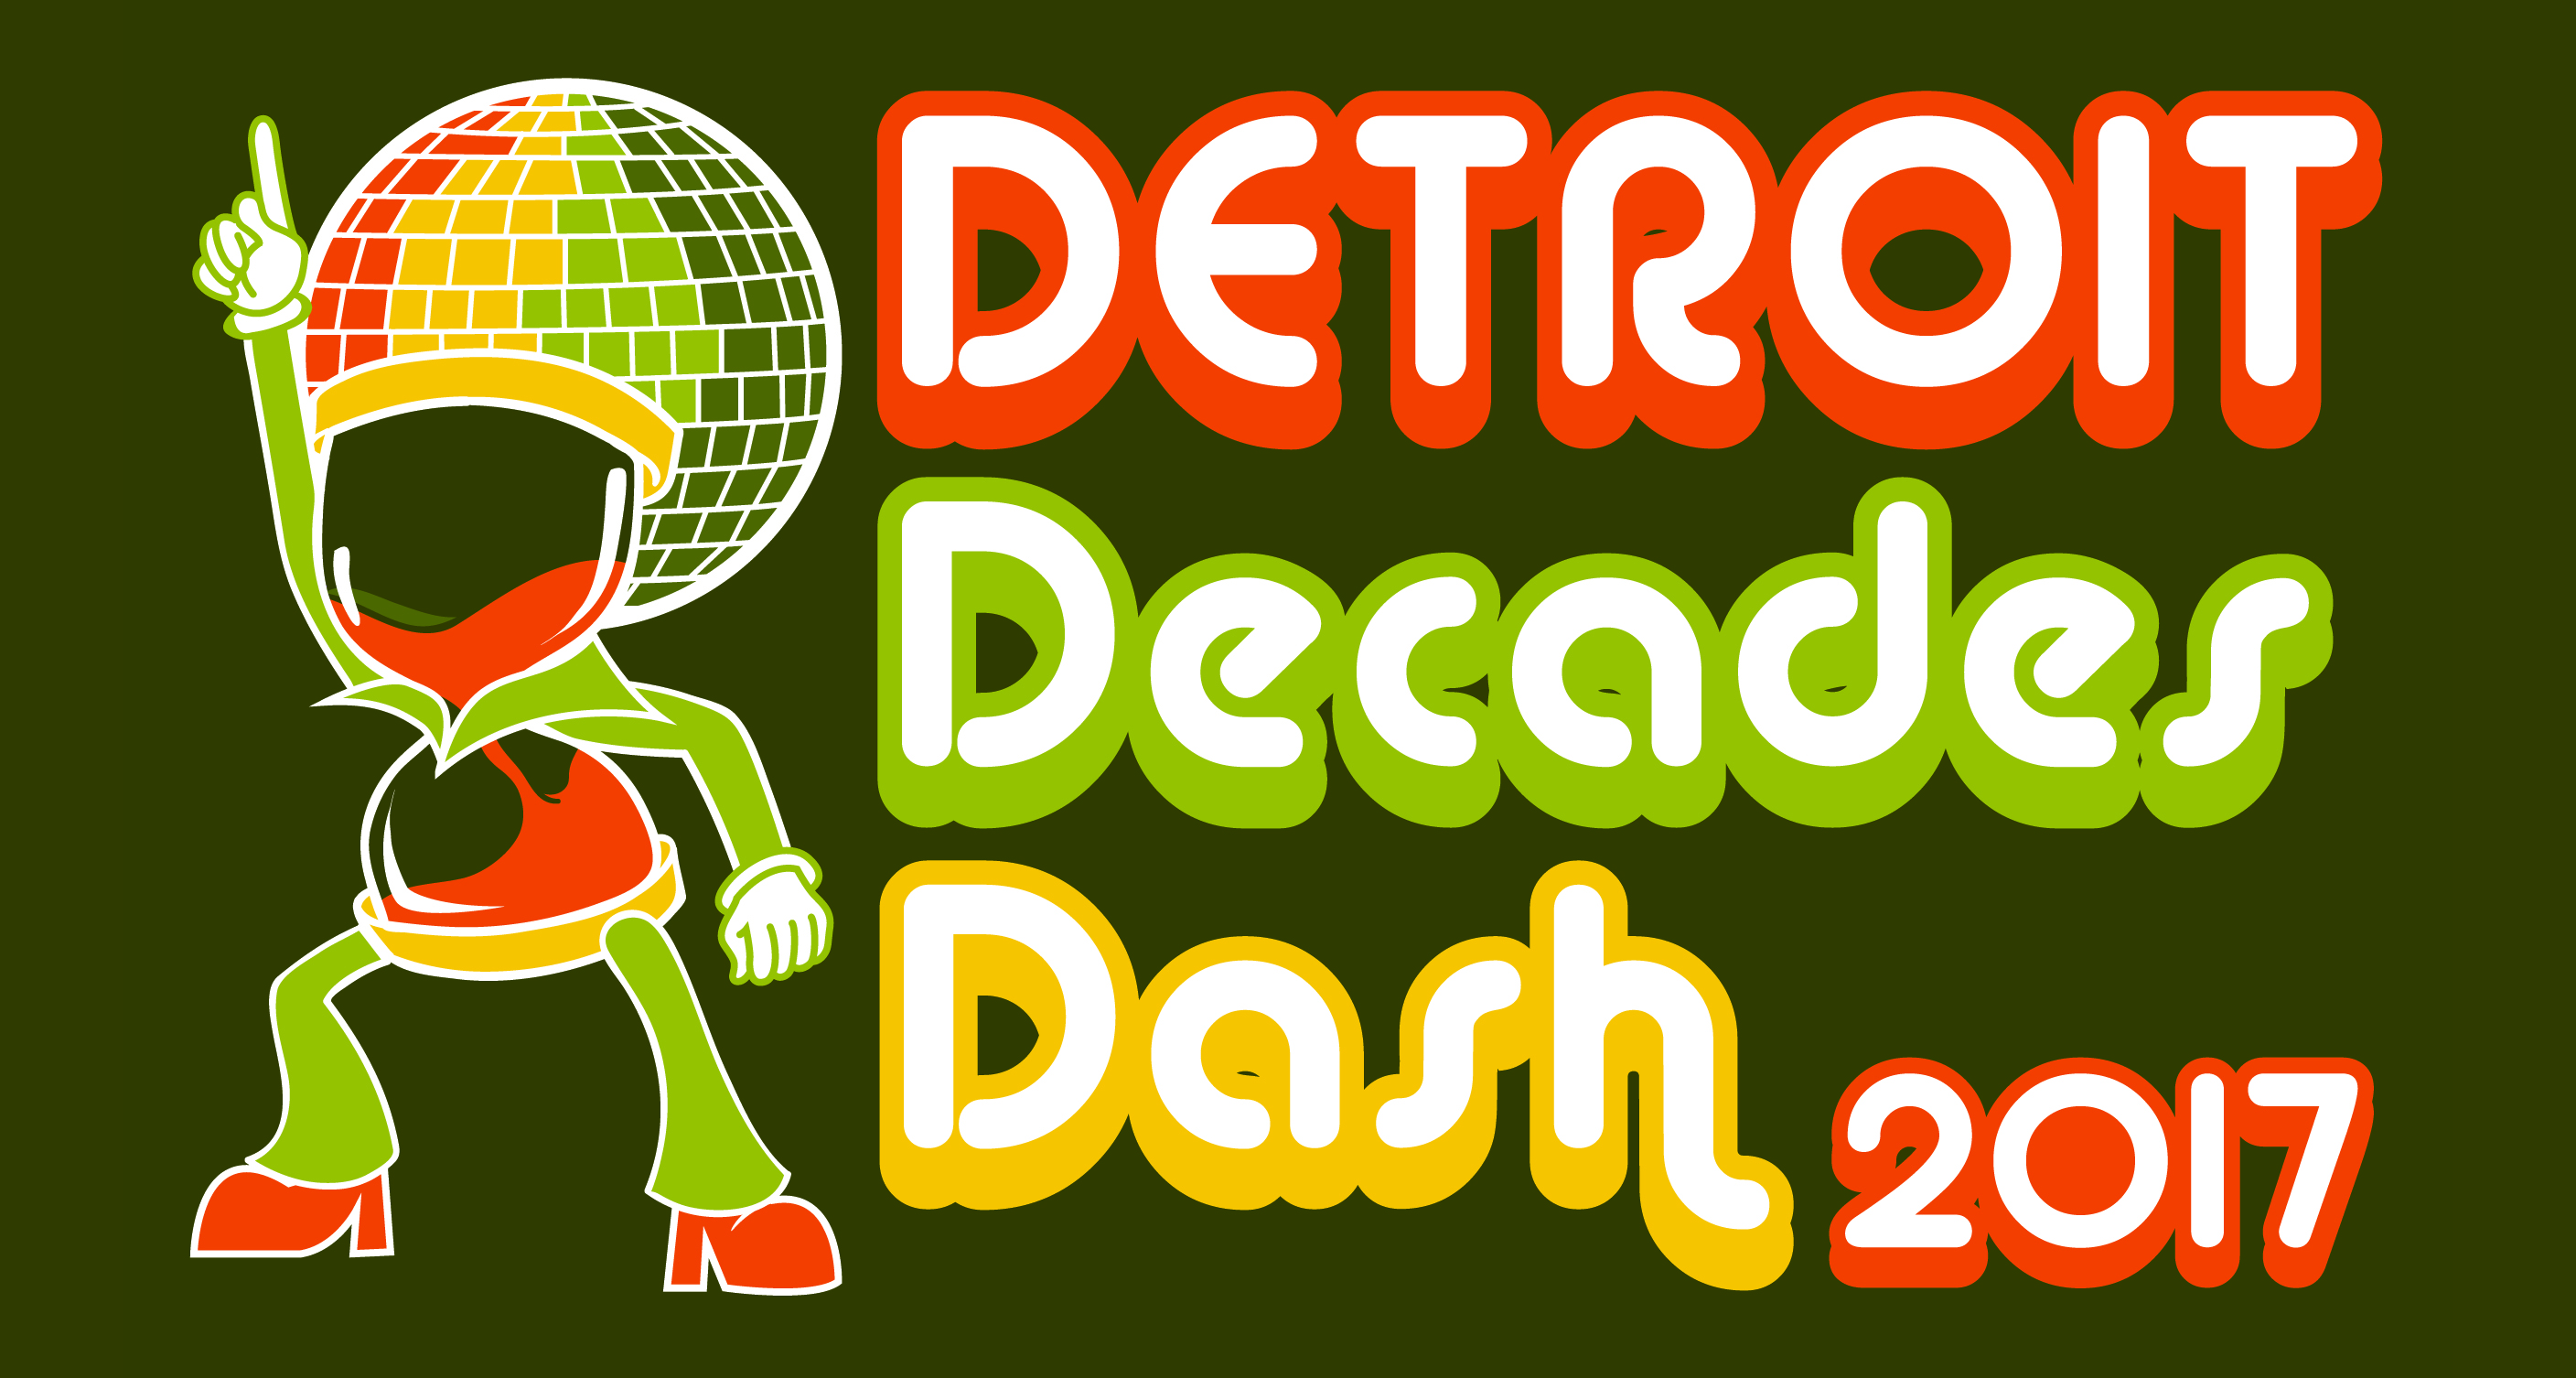 Register for the 2017 Detroit Decades Dash